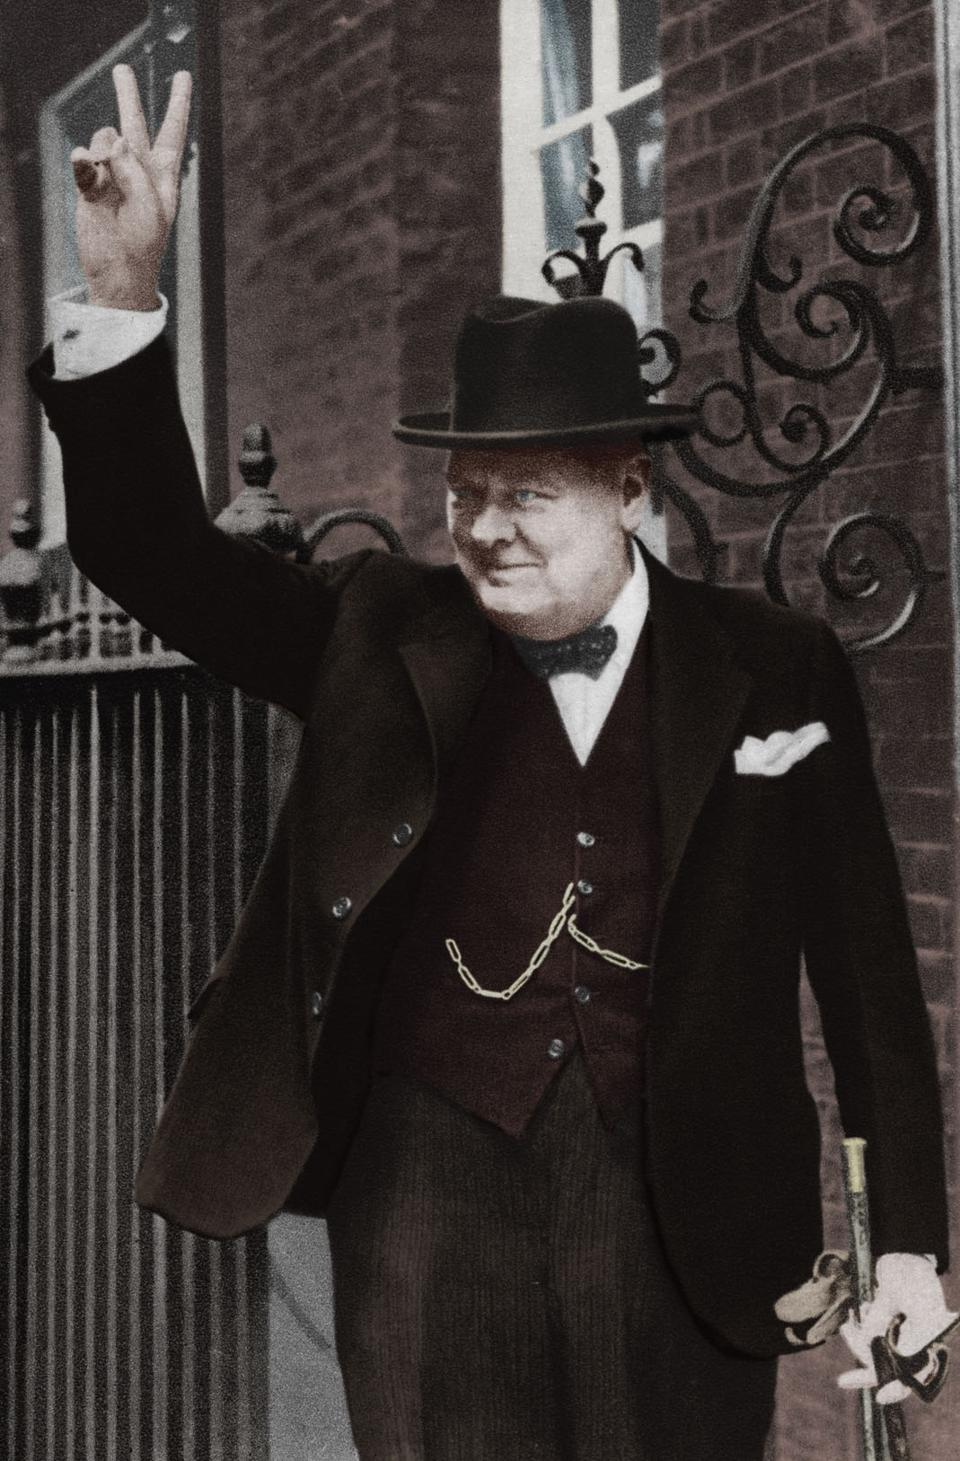 Winston Churchill making the ″V for Victory″ sign outside of 10 Downing Street in June 1943.